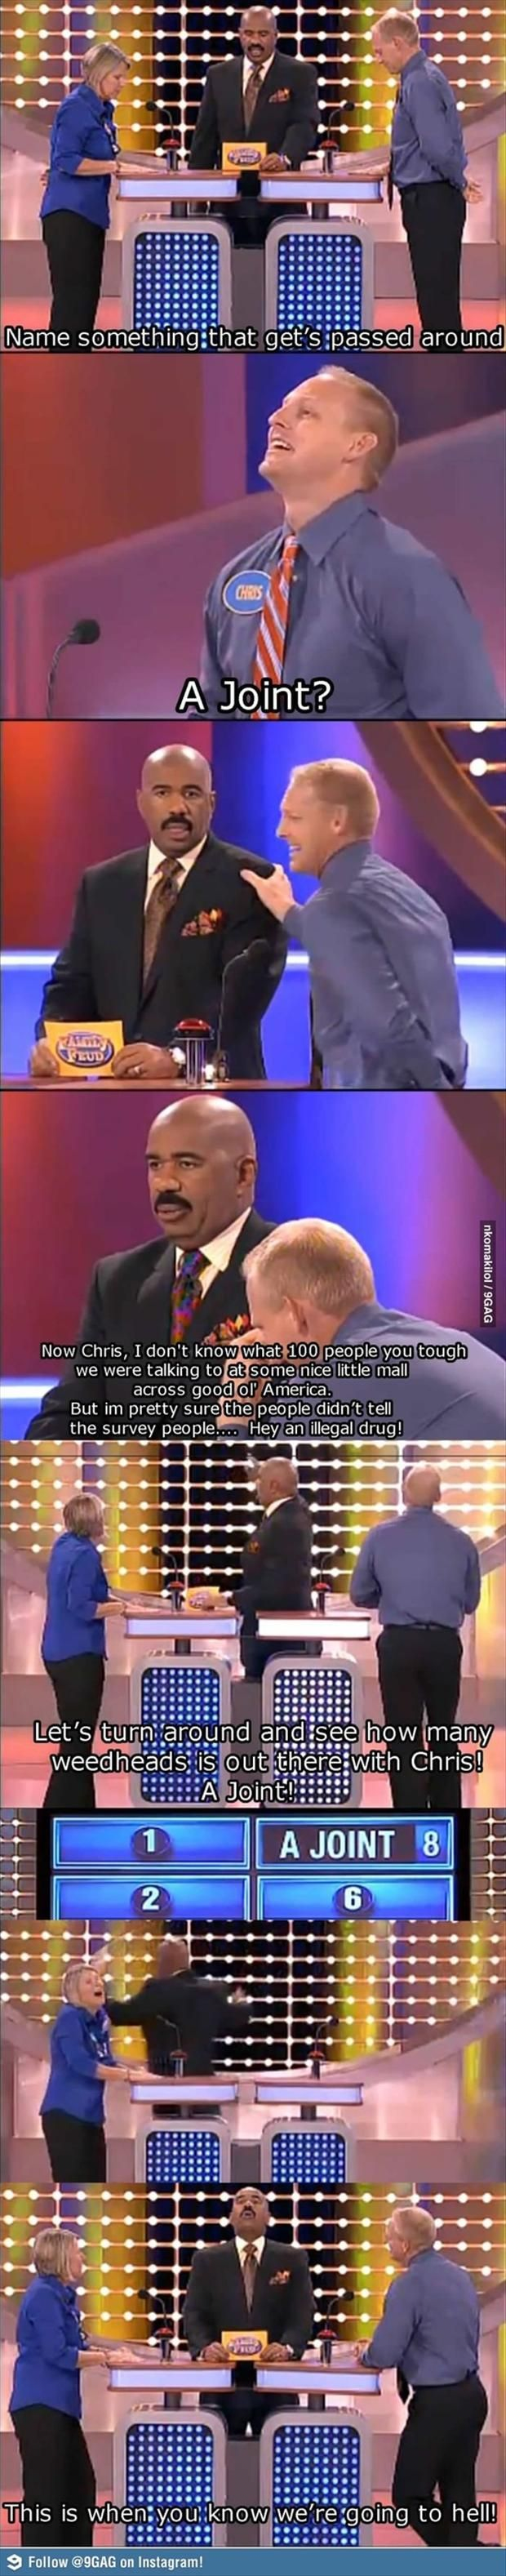 Evolution of Family Feud... Love how this long time game show still proves that in today's modern society, Americans  stereotypes/prejudices won't ever seem to die out. Steve Harvey, God bless you for being able to show us that you can turn lemons into Lemonade by humor